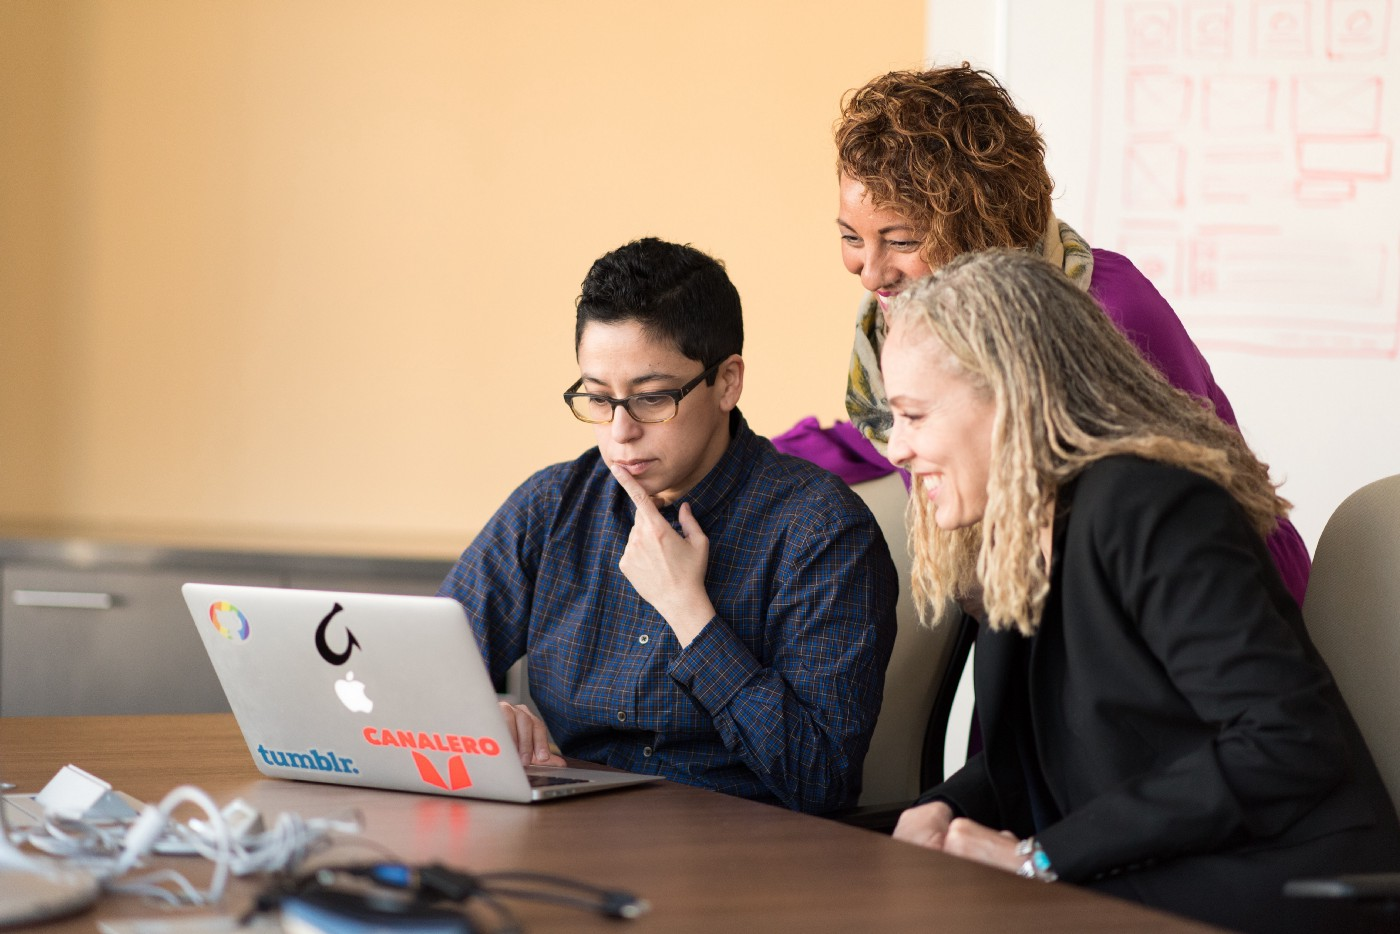 three employees collaborate around a laptop computer sitting on a table